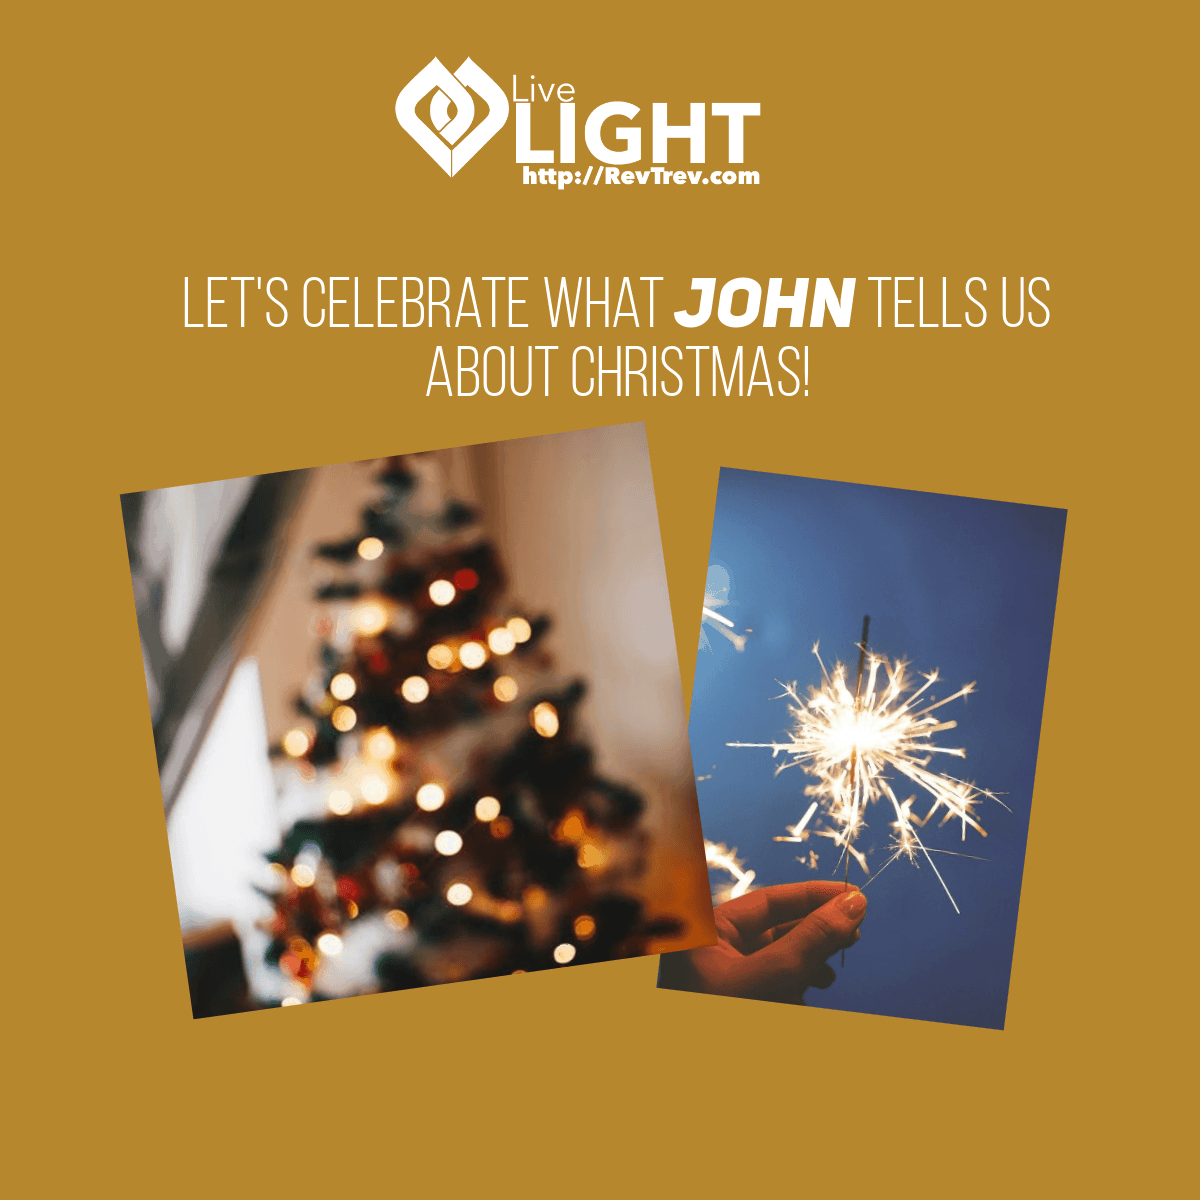 Let's celebrate what John tells us about Christmas! via @trevorlund